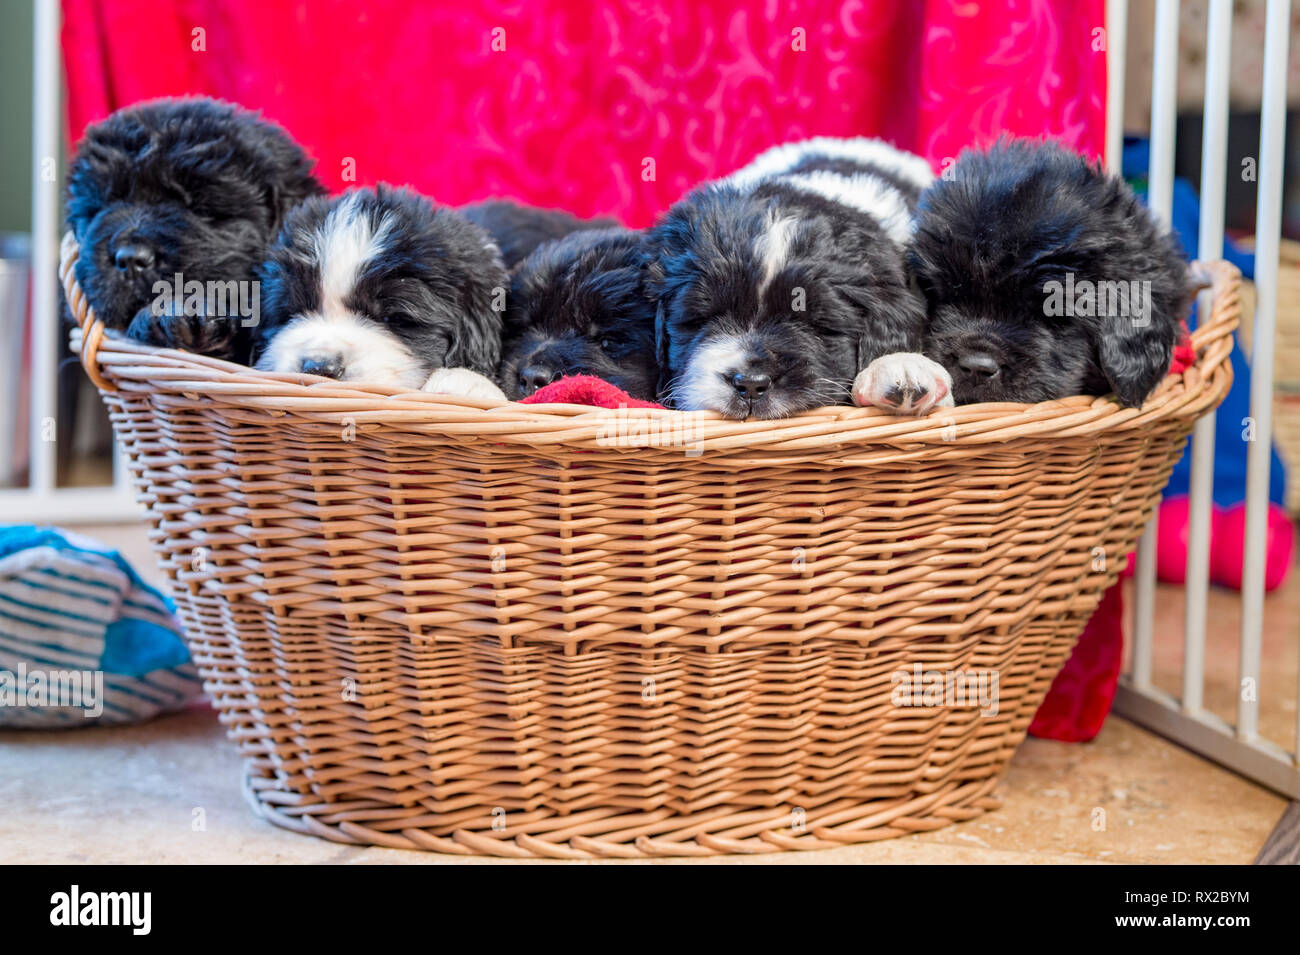 A large litter of Newfie puppies sitting in a basket. - Stock Image